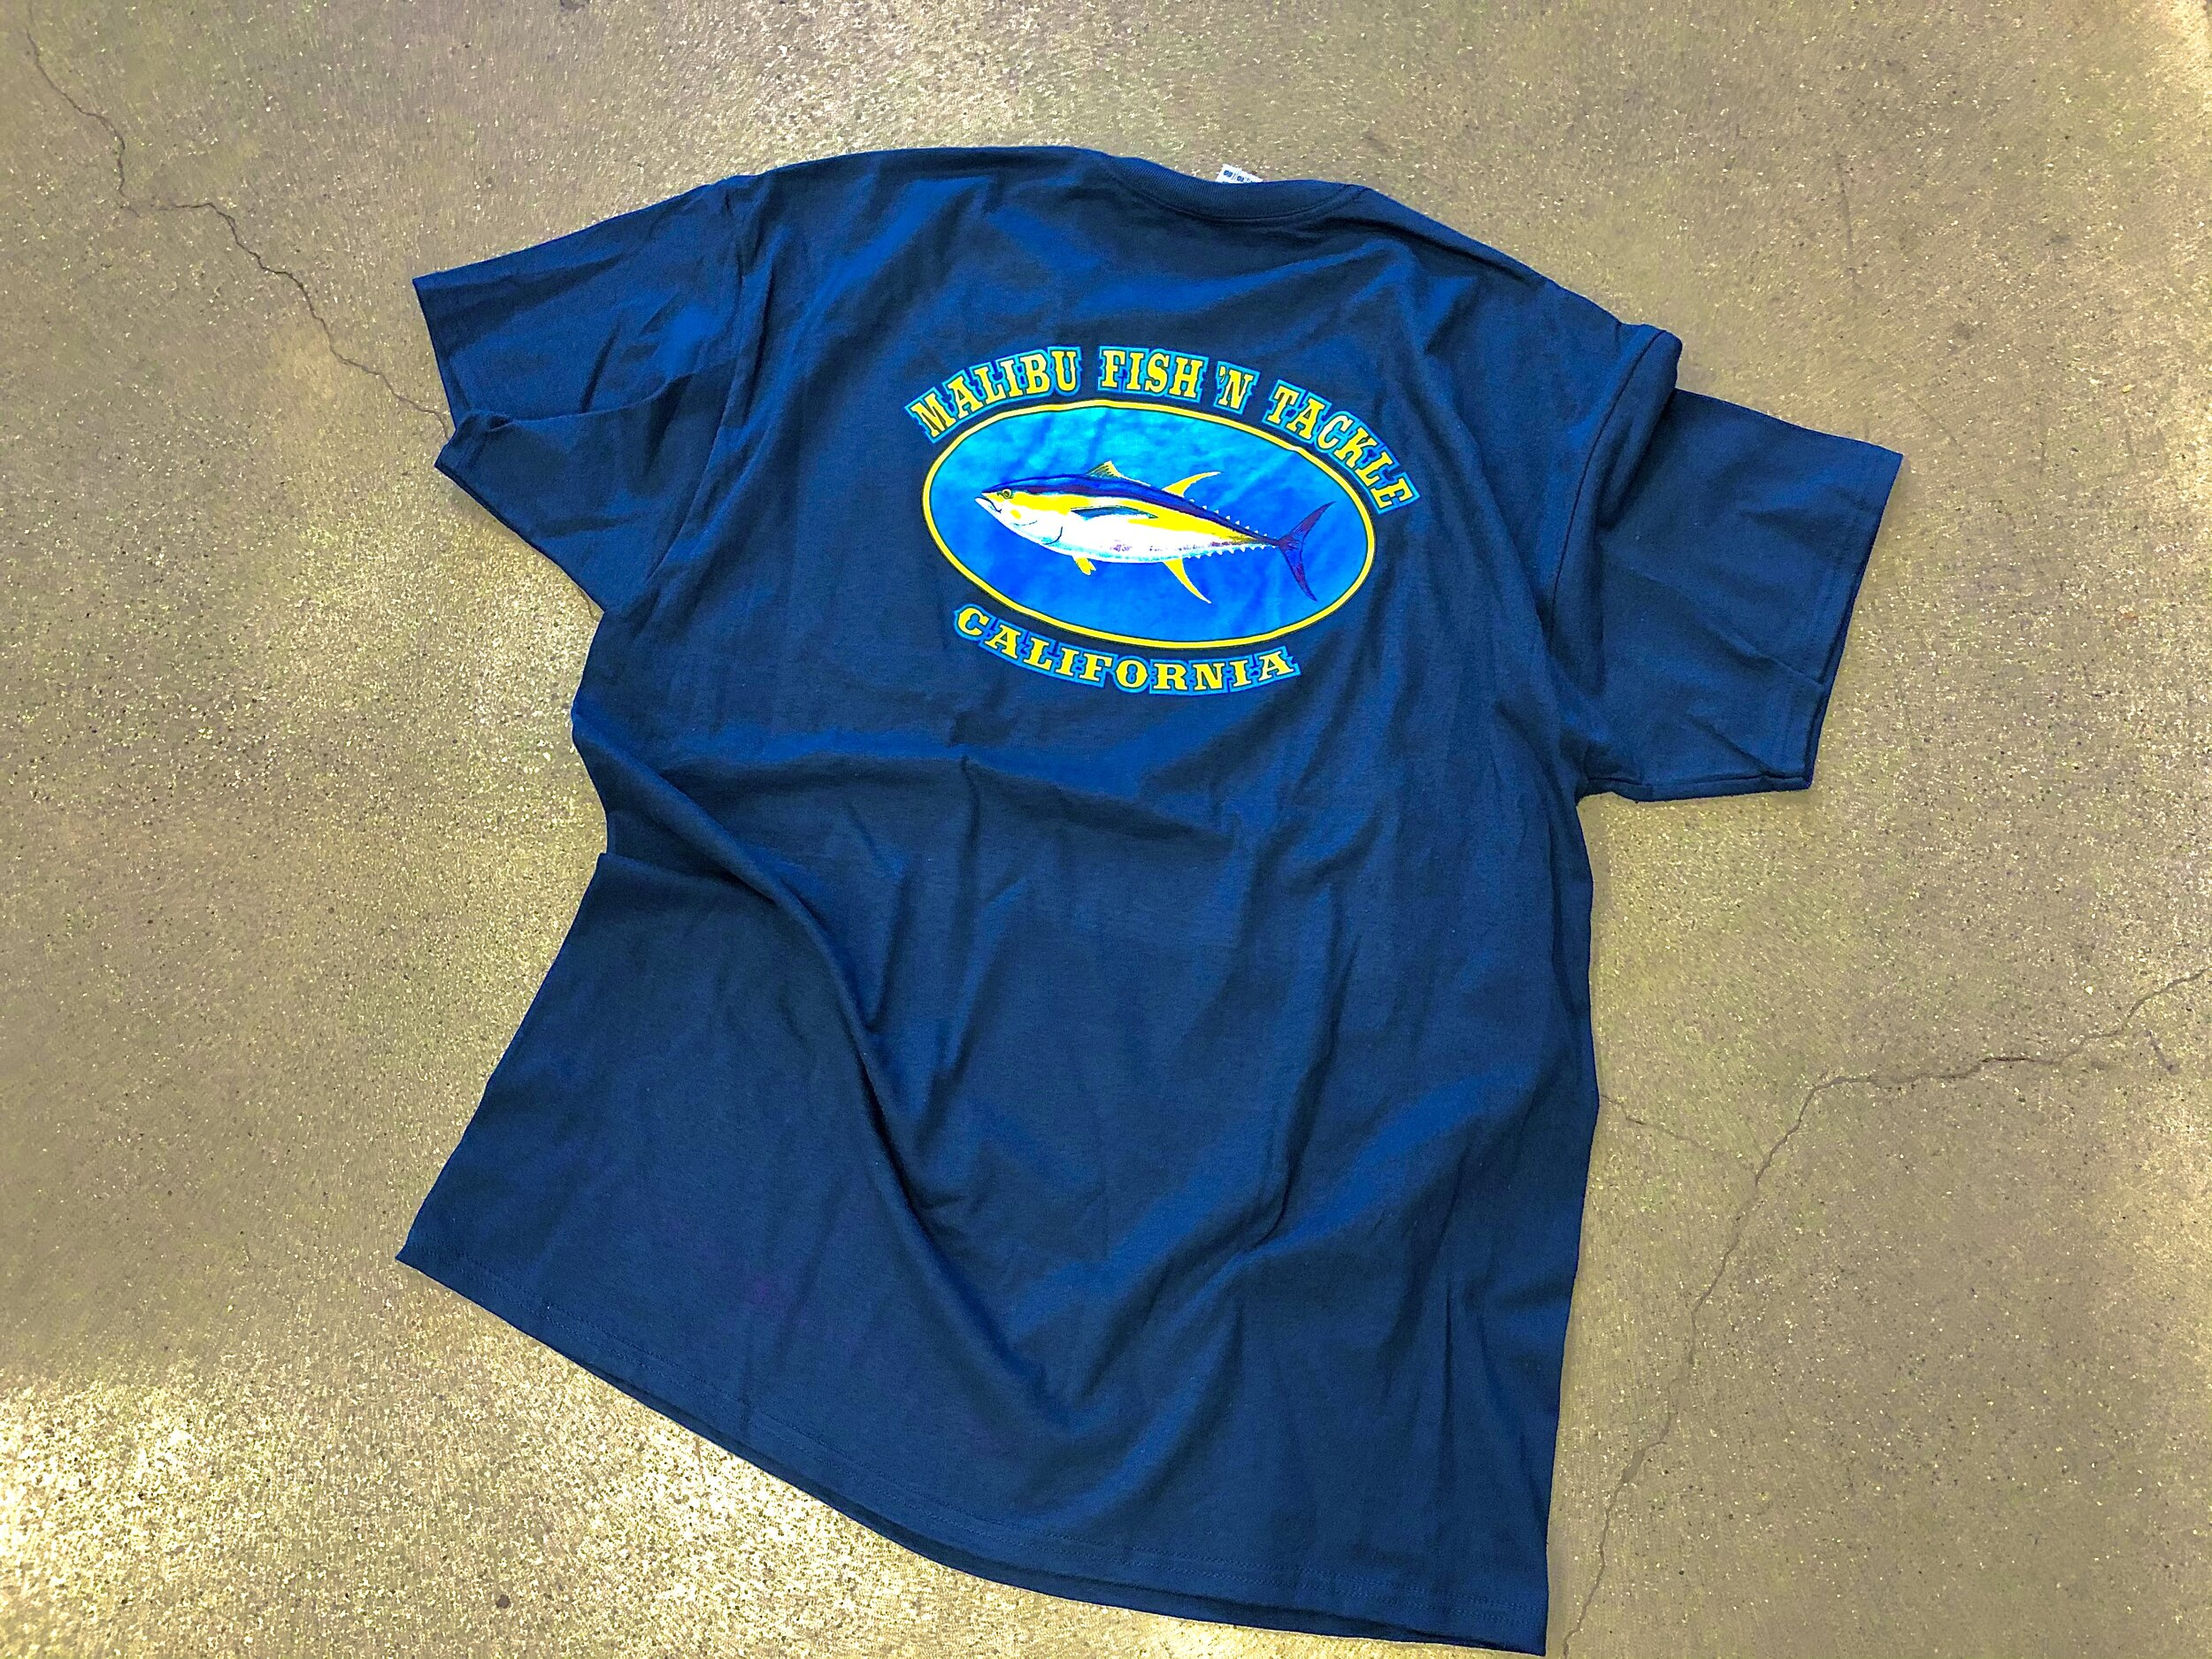 NEw MFT shirts in stock now - $22.95